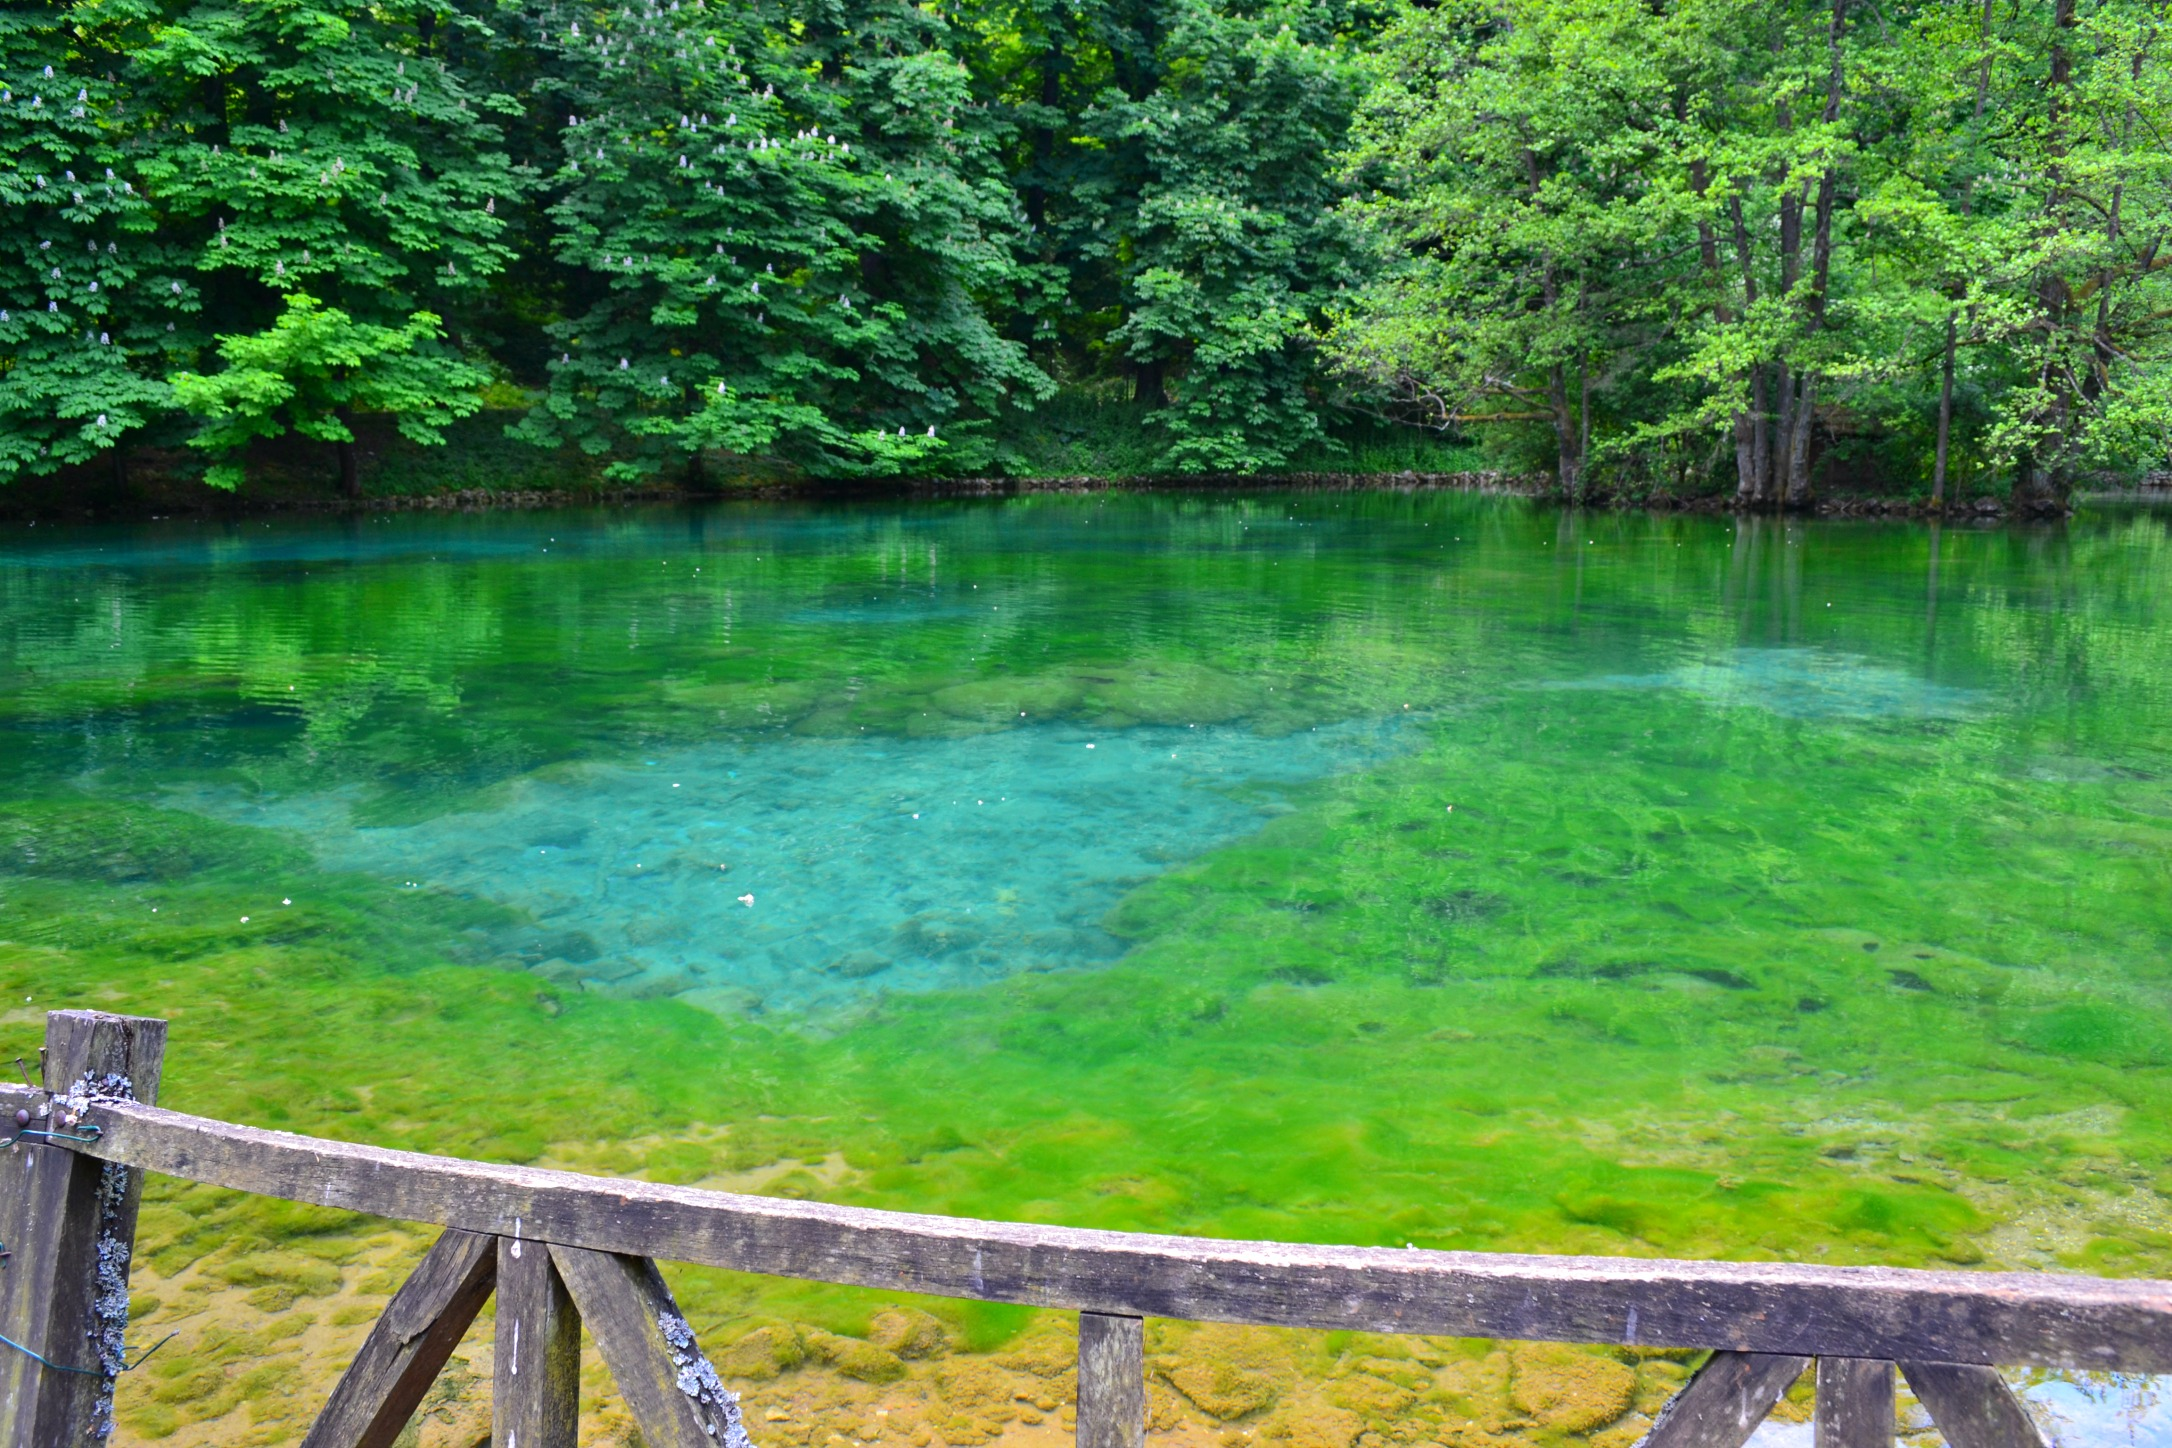 Lakes in Vrelo Bosne, Sajarevo, Bosnia and Herzegovina